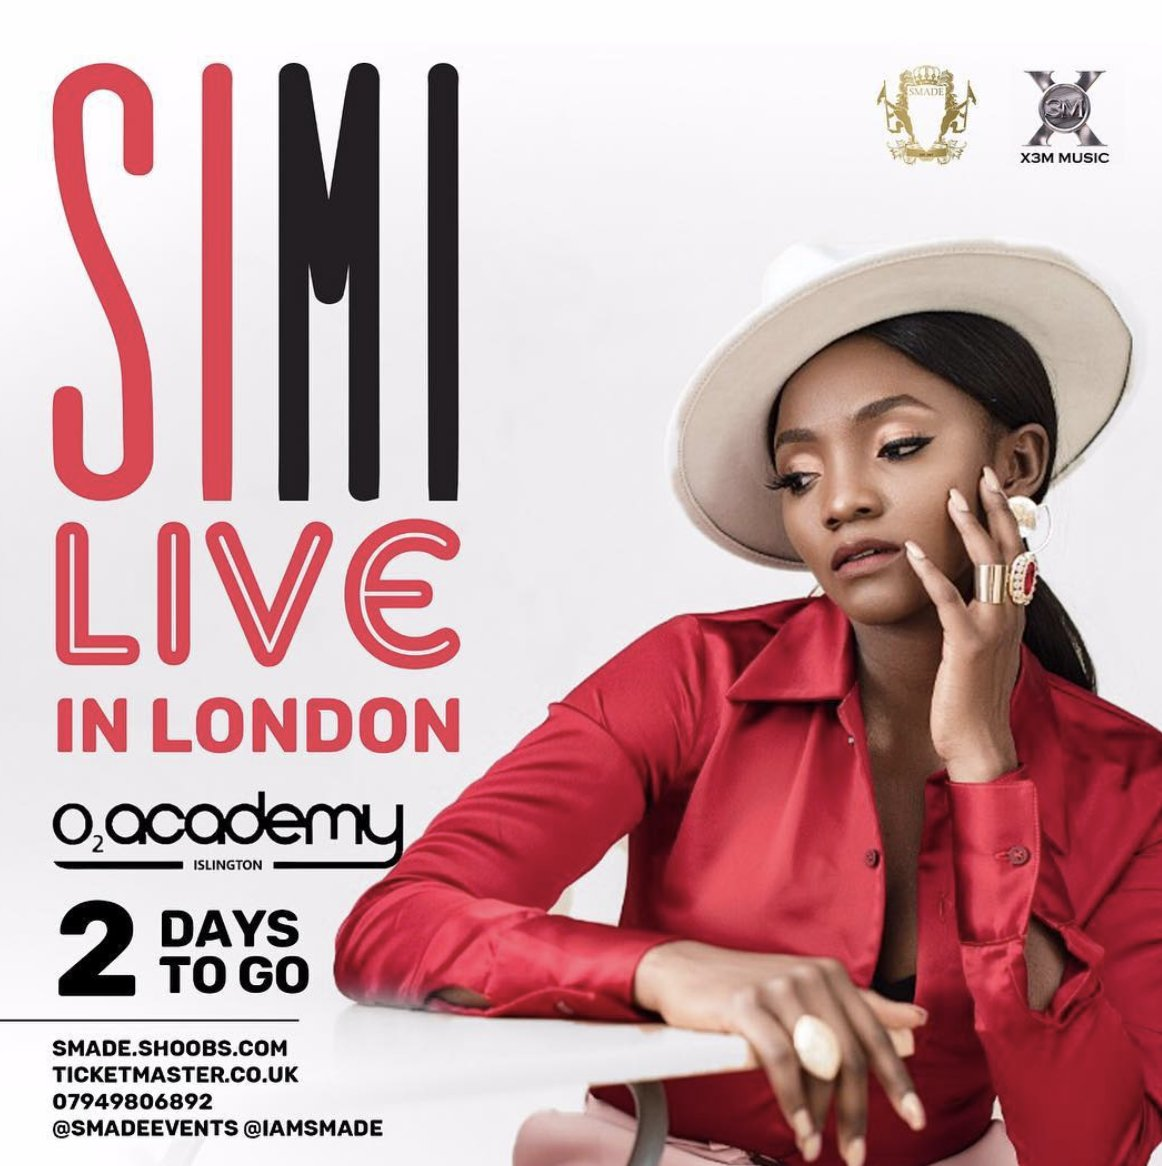 2 Days To Go!!! #Symplysimi @symplysimi is bringing  to London you can pick your tickets  SIMI Live in LONDON* 11.11.18 tickets O2 Academy Islington https://shoobs.com/…/2…/simi-live-02academy-london-11-11-18… *almost soldout* #DONTMISSOUT #Smadeevents @Smadeeventspic.twitter.com/M7QsMn3Atr